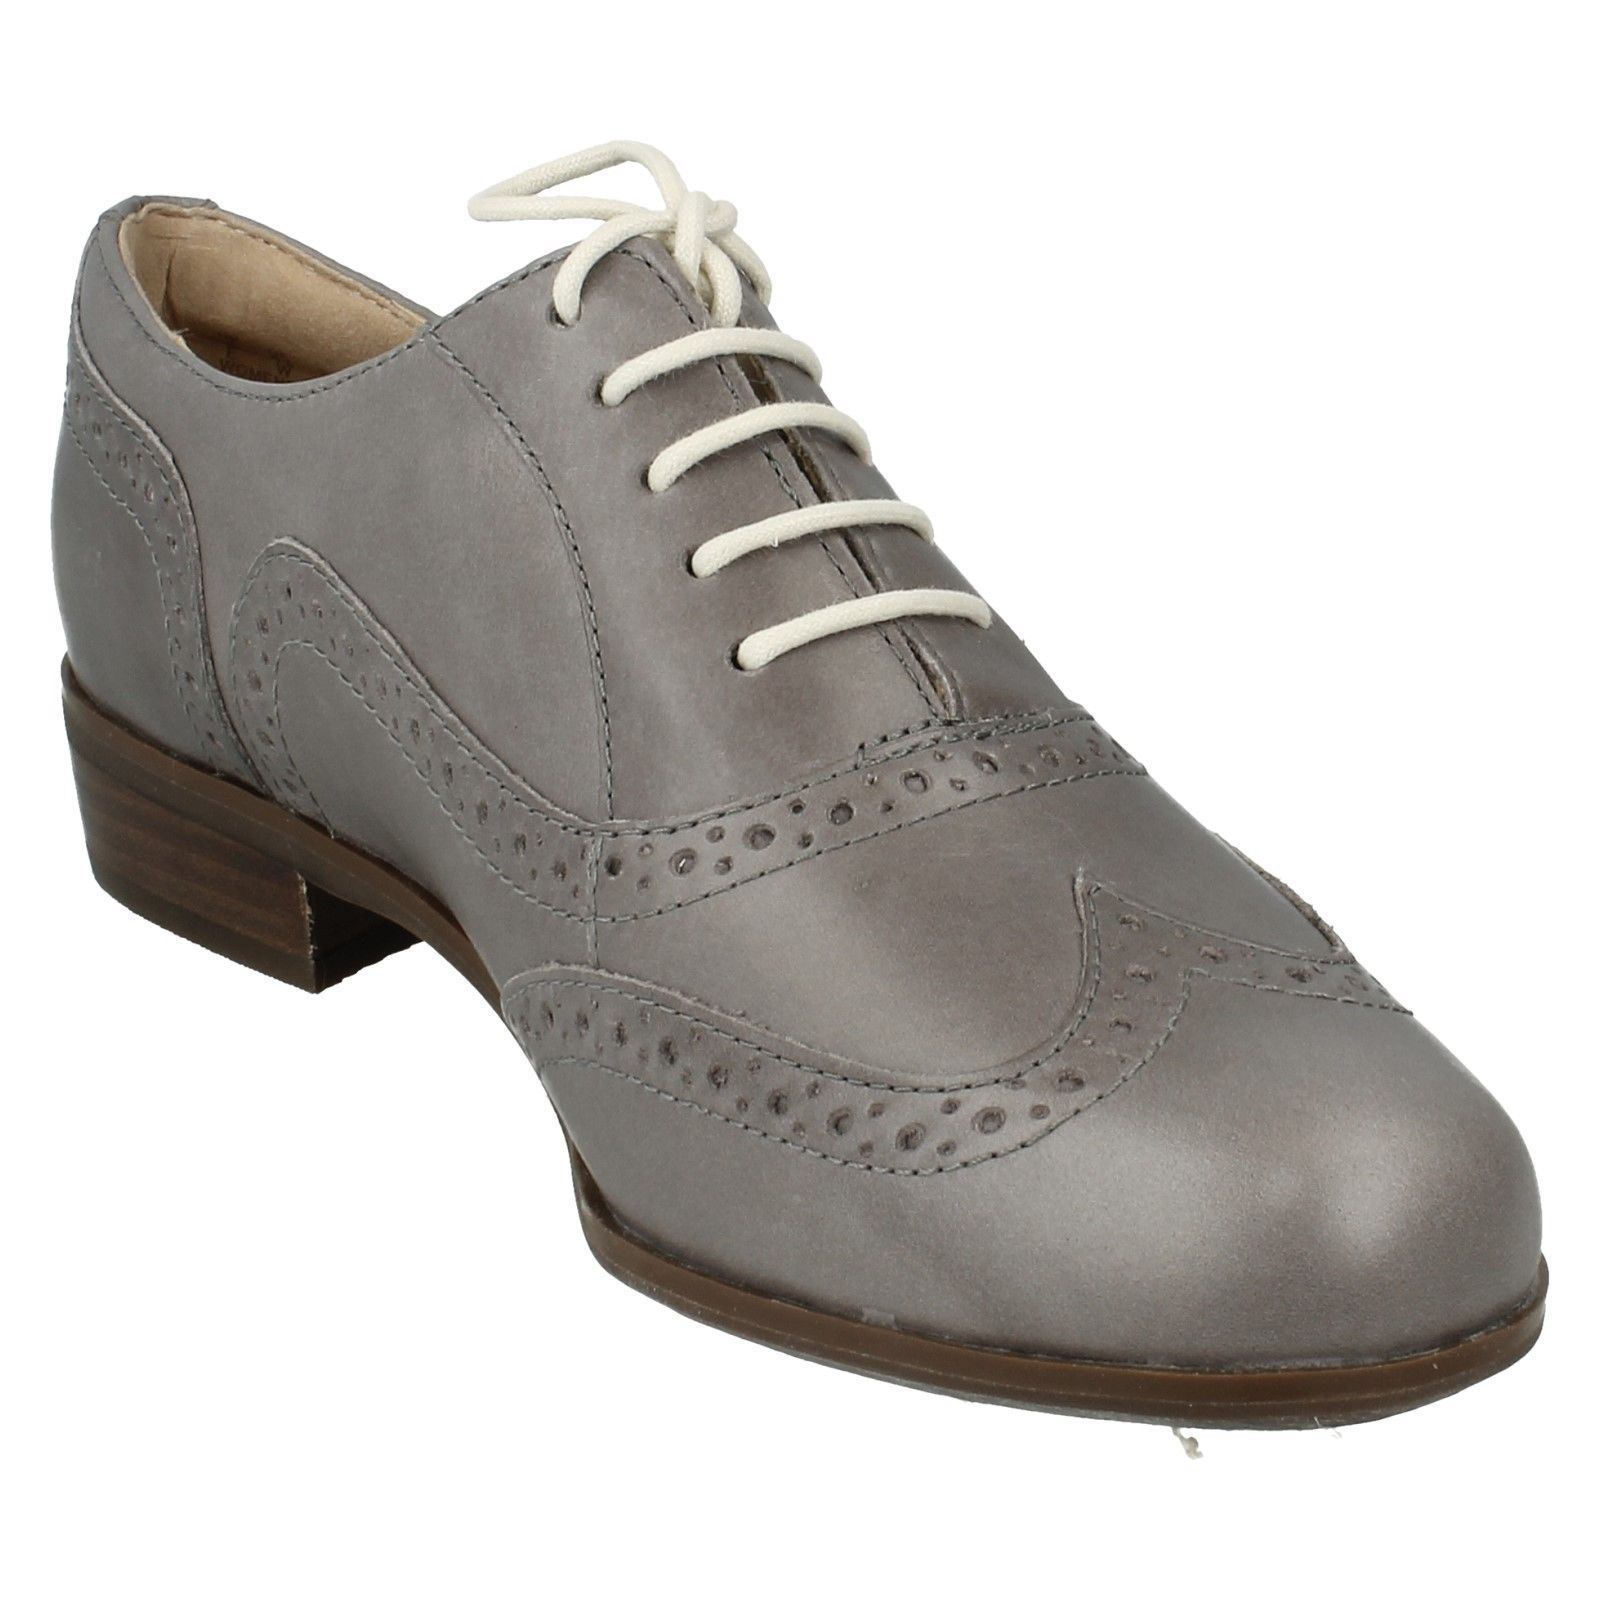 Clarks Oxford Shoes Ladies